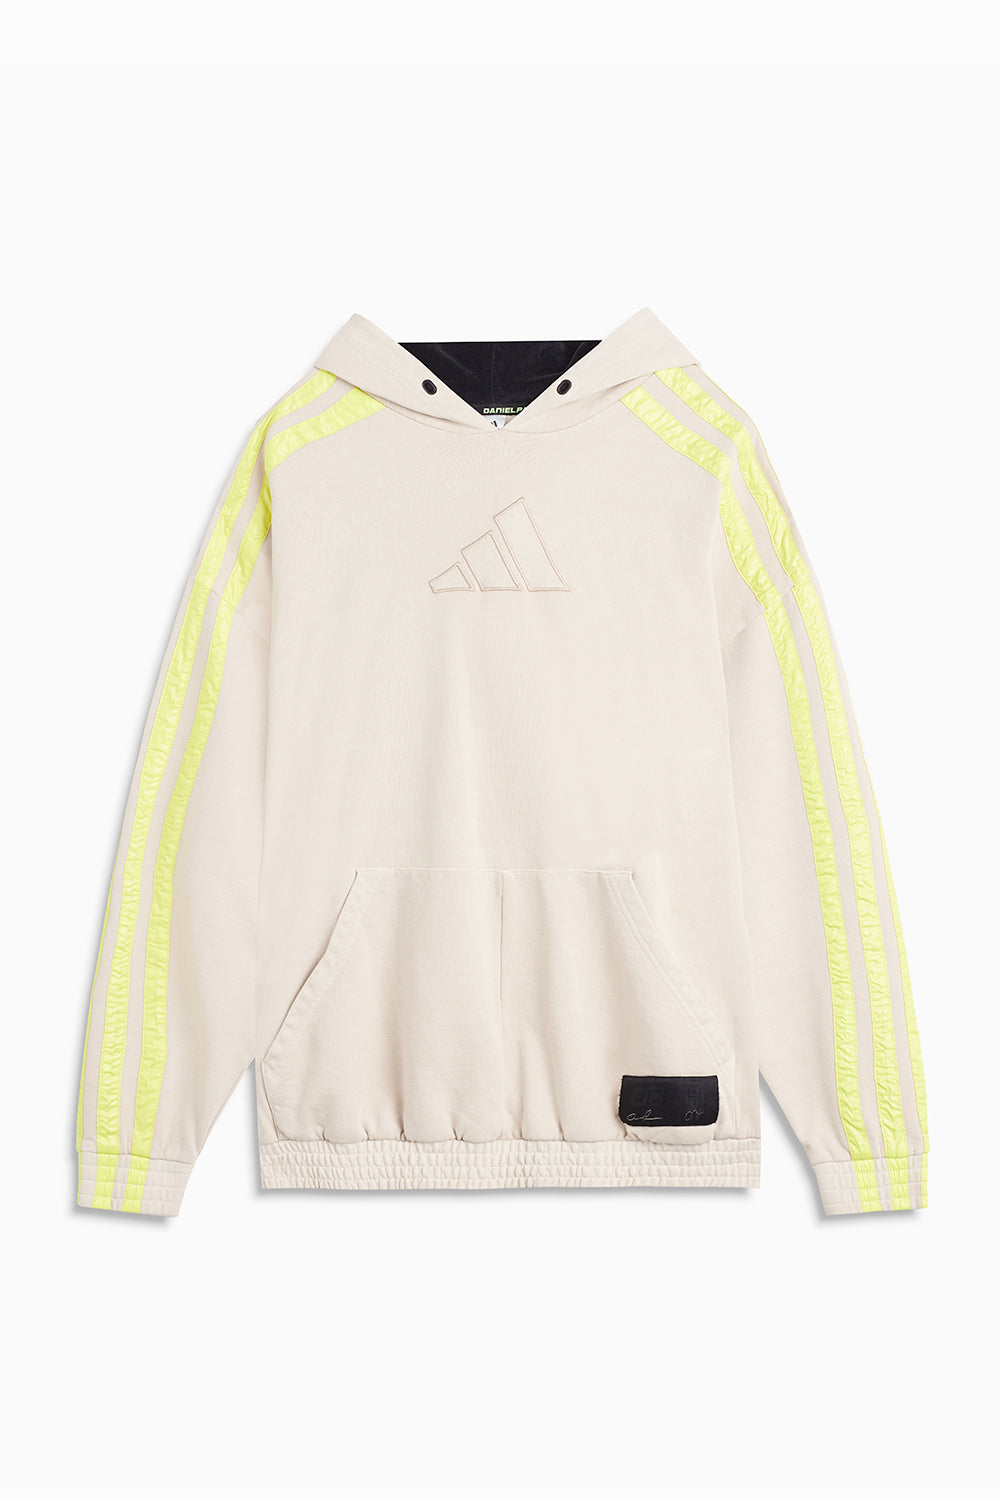 DP x James Harden x Adidas hoodie / sand + yellow